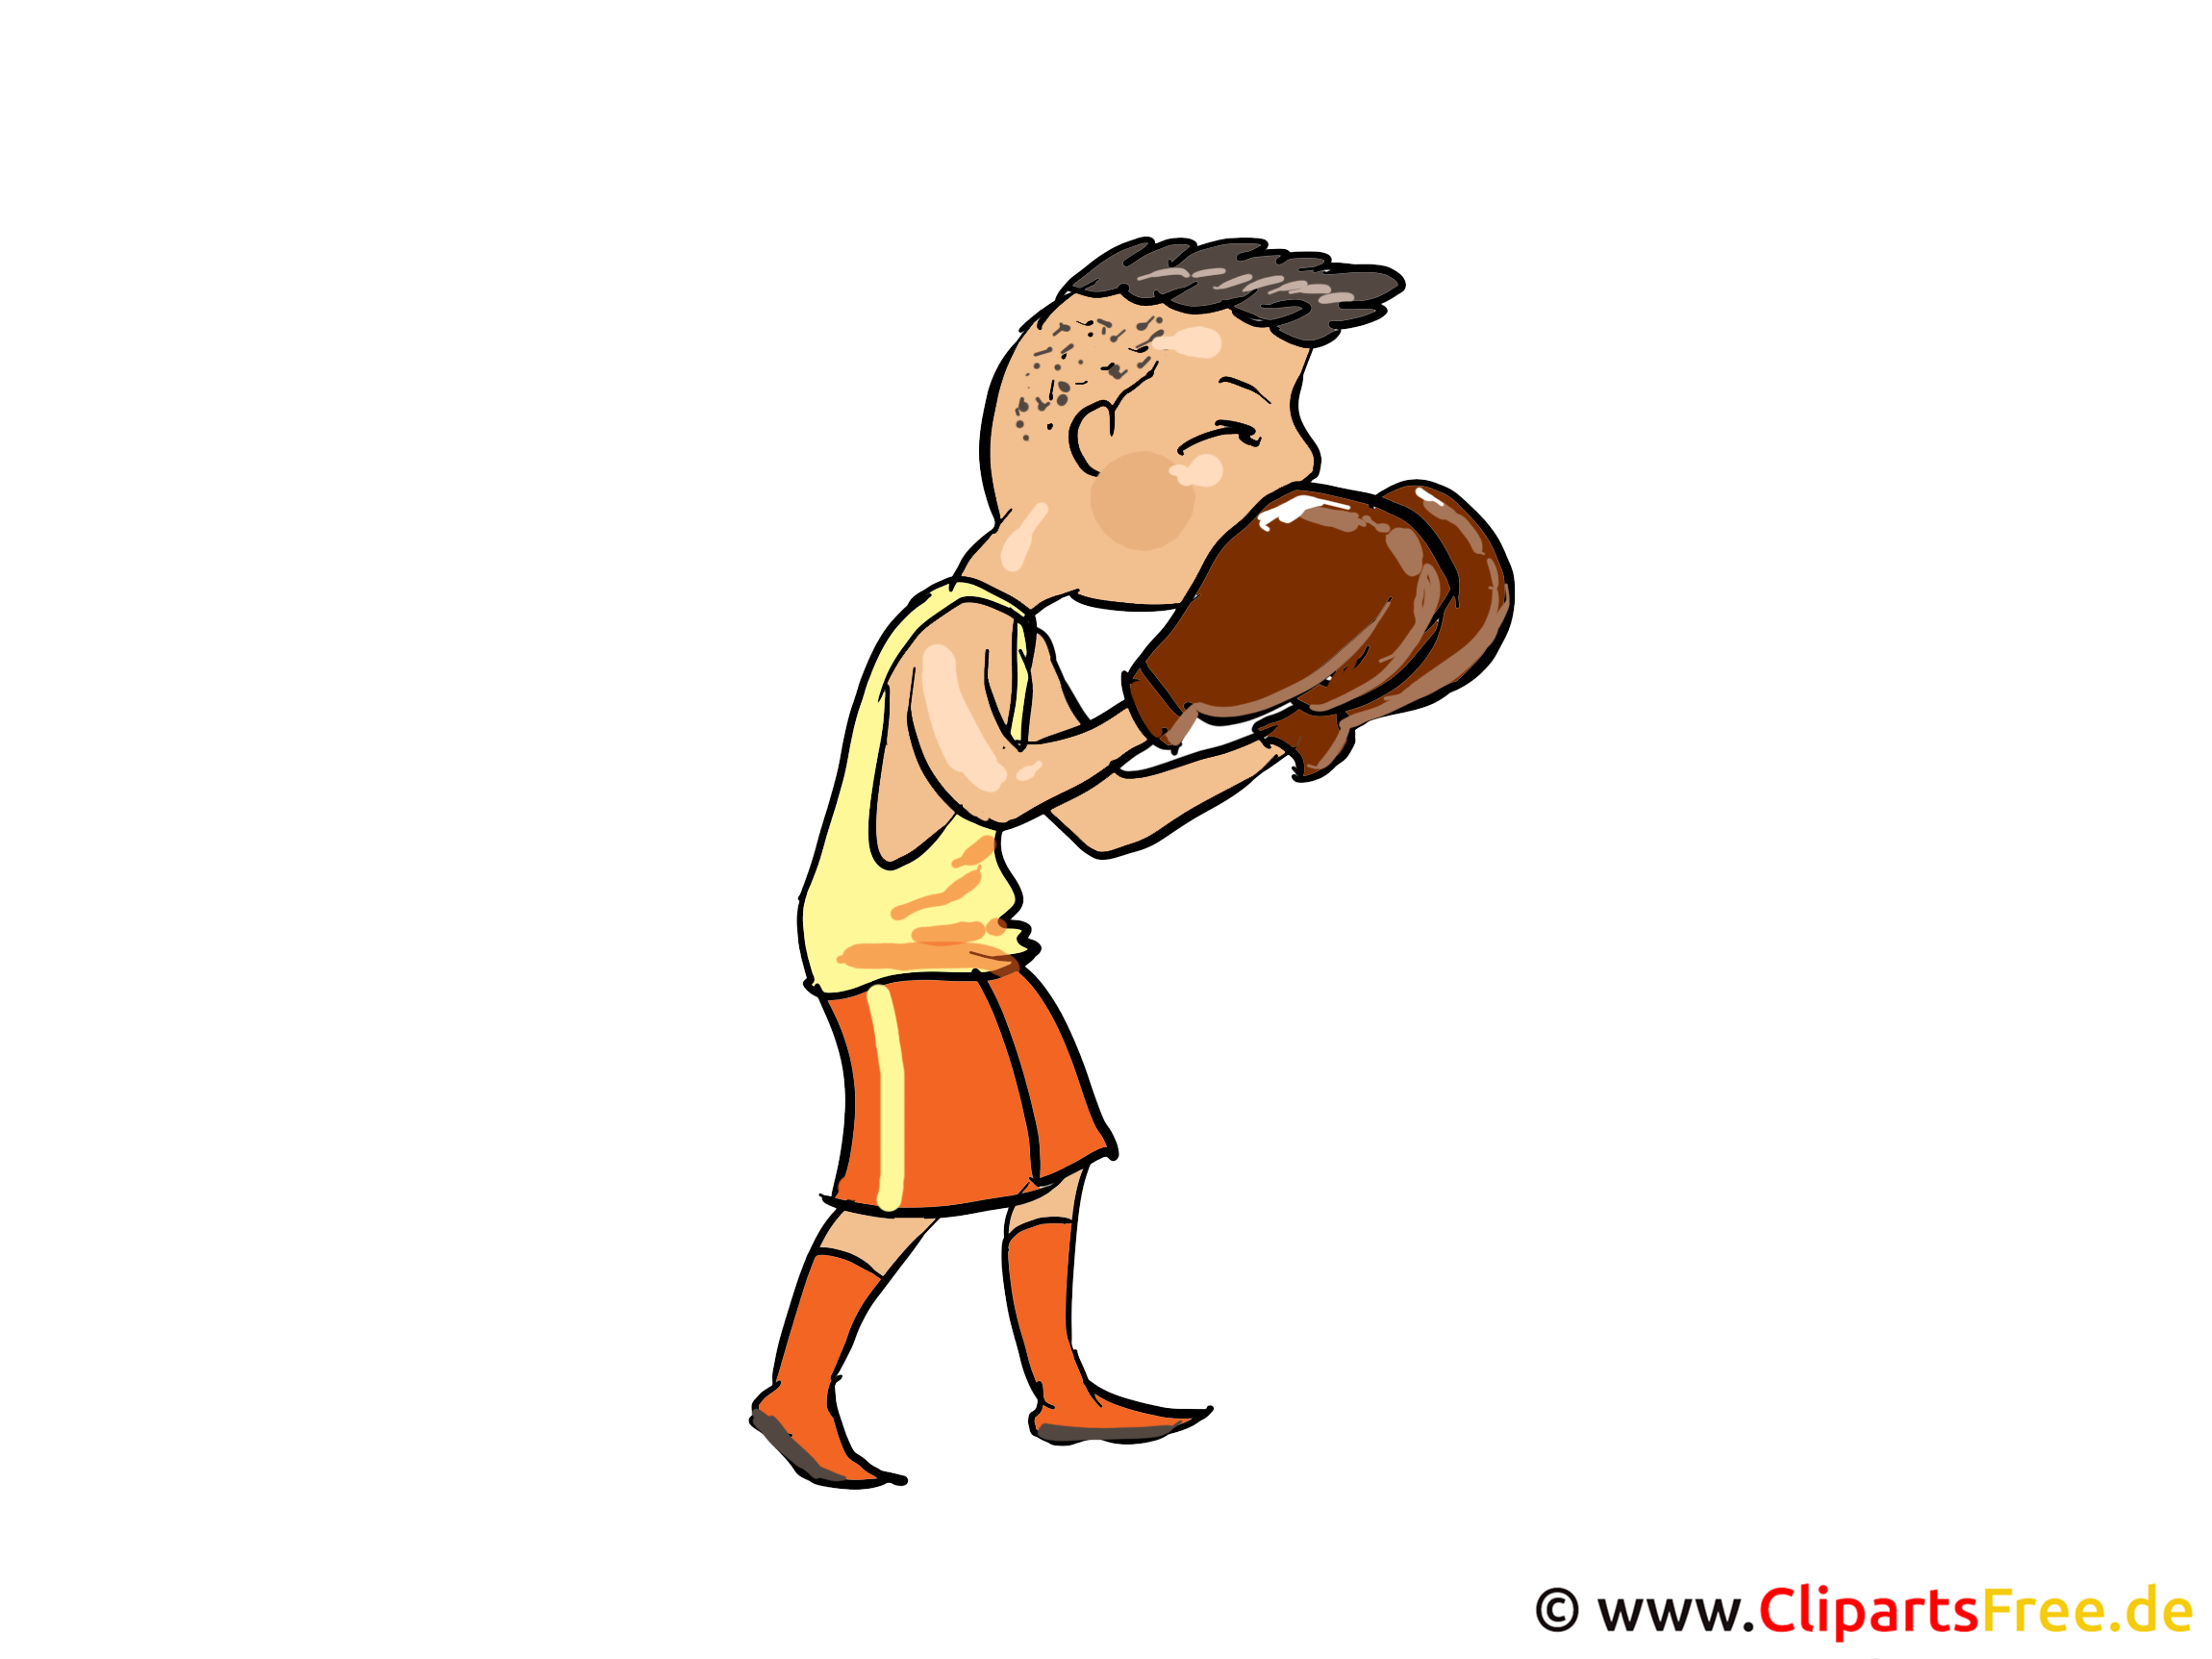 Boxer, Training, Boxstellung Bild, Clipart, Cartoon